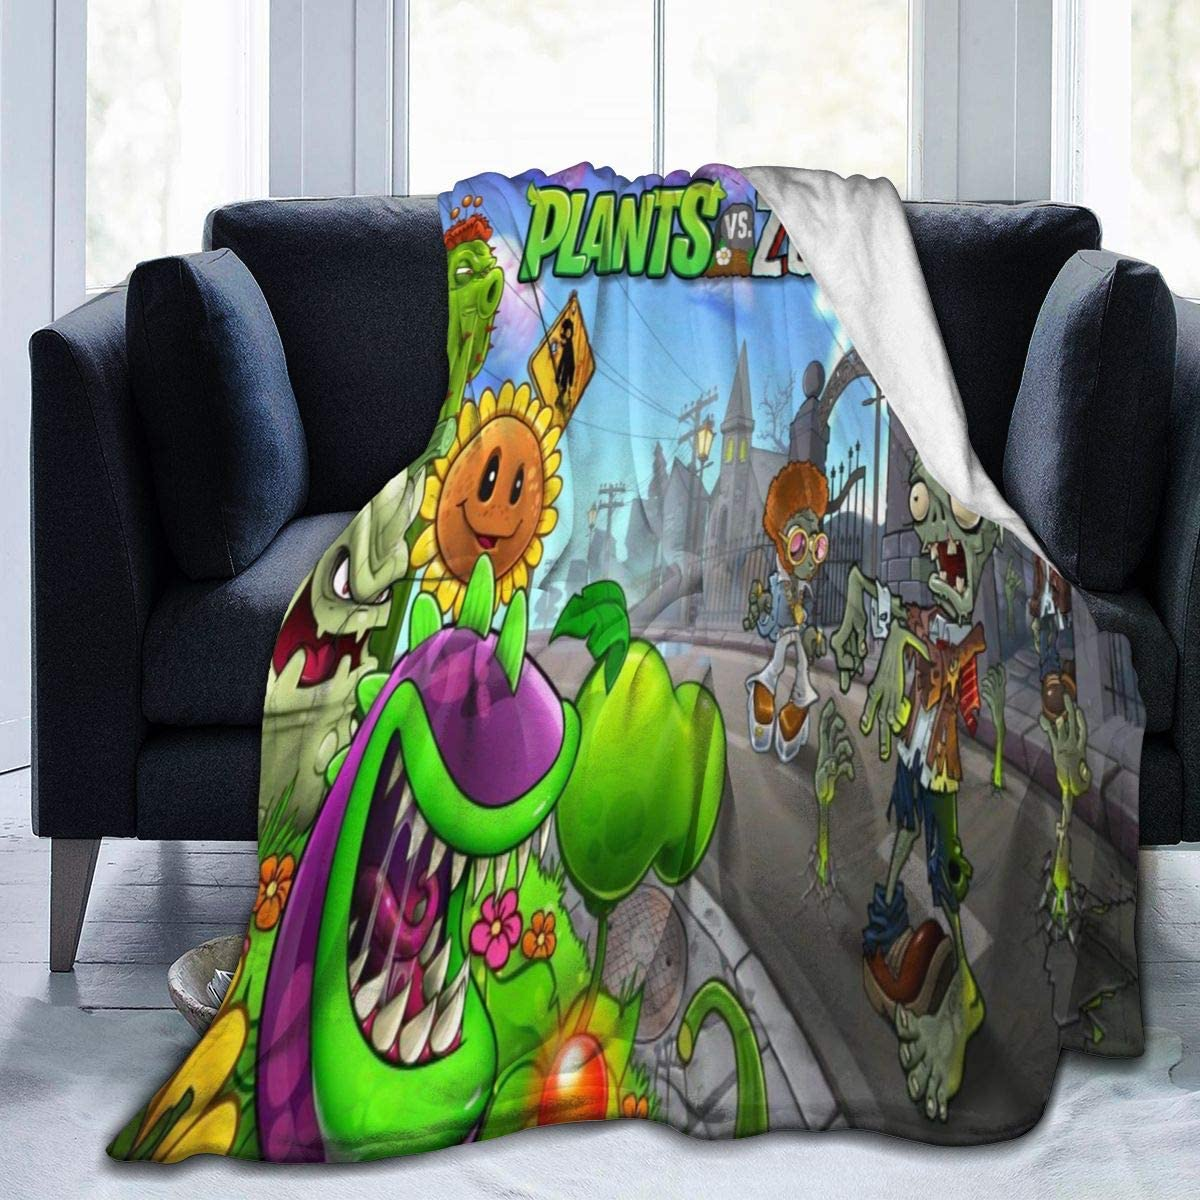 Soft blanket,Plants Vs. Zombies Small Plush Blankets That Keep Warm Throughout The Seasons, Light-Weight Warm And Anti-Flocking Flannel Blankets, Used For Sofa Beds, Air-Conditioning Quilts50